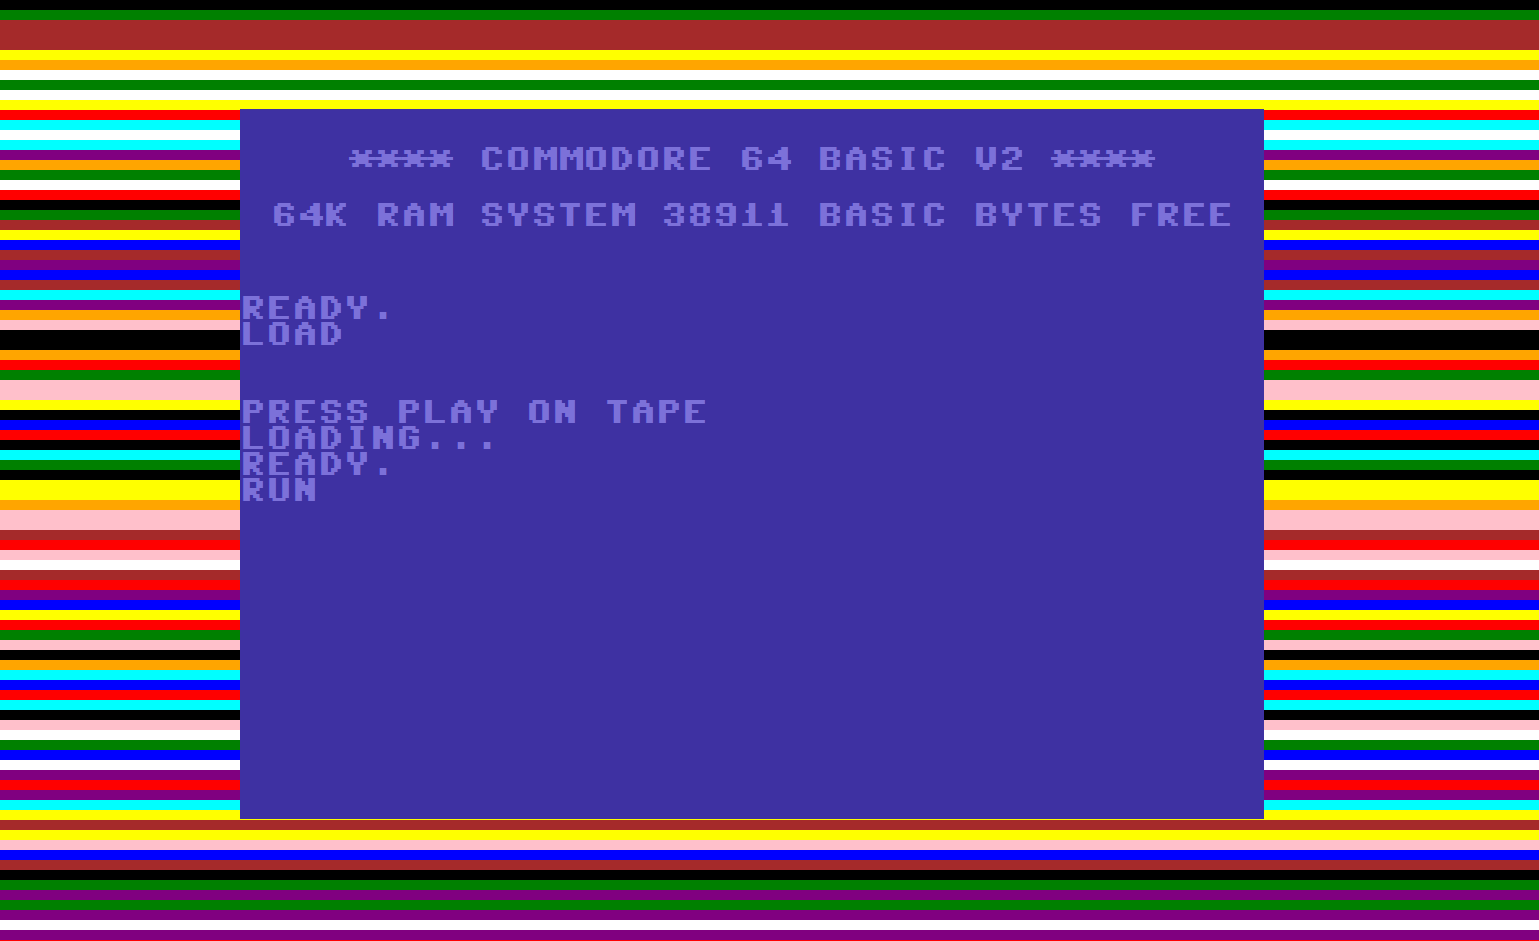 Ashens terrible old video games Commodore 64 loading page – Loaded